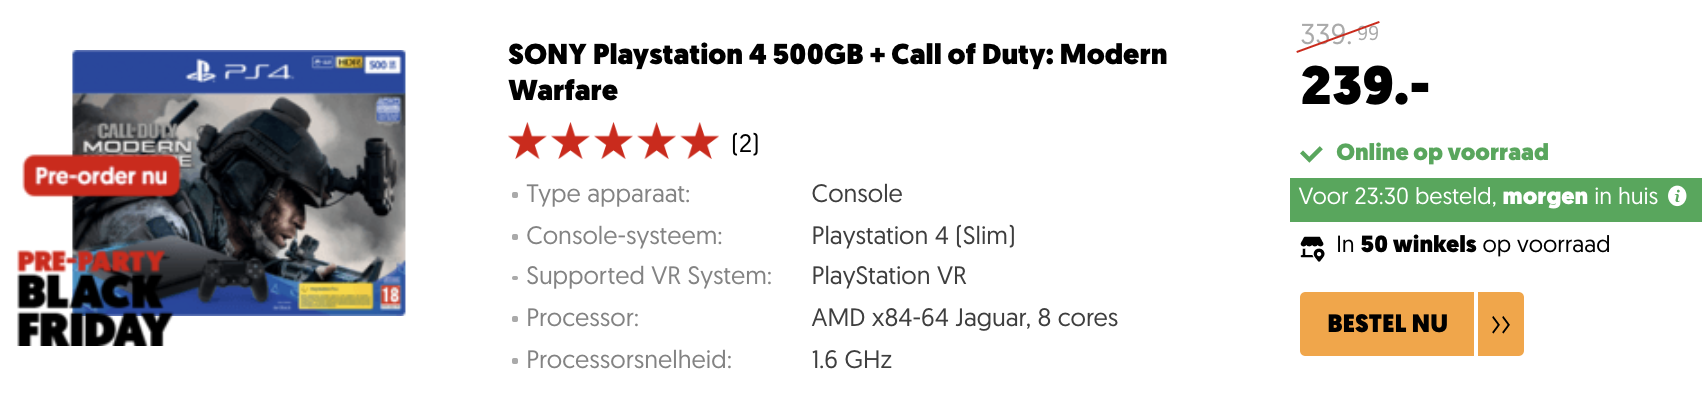 PS4 Black Friday Call of Duty